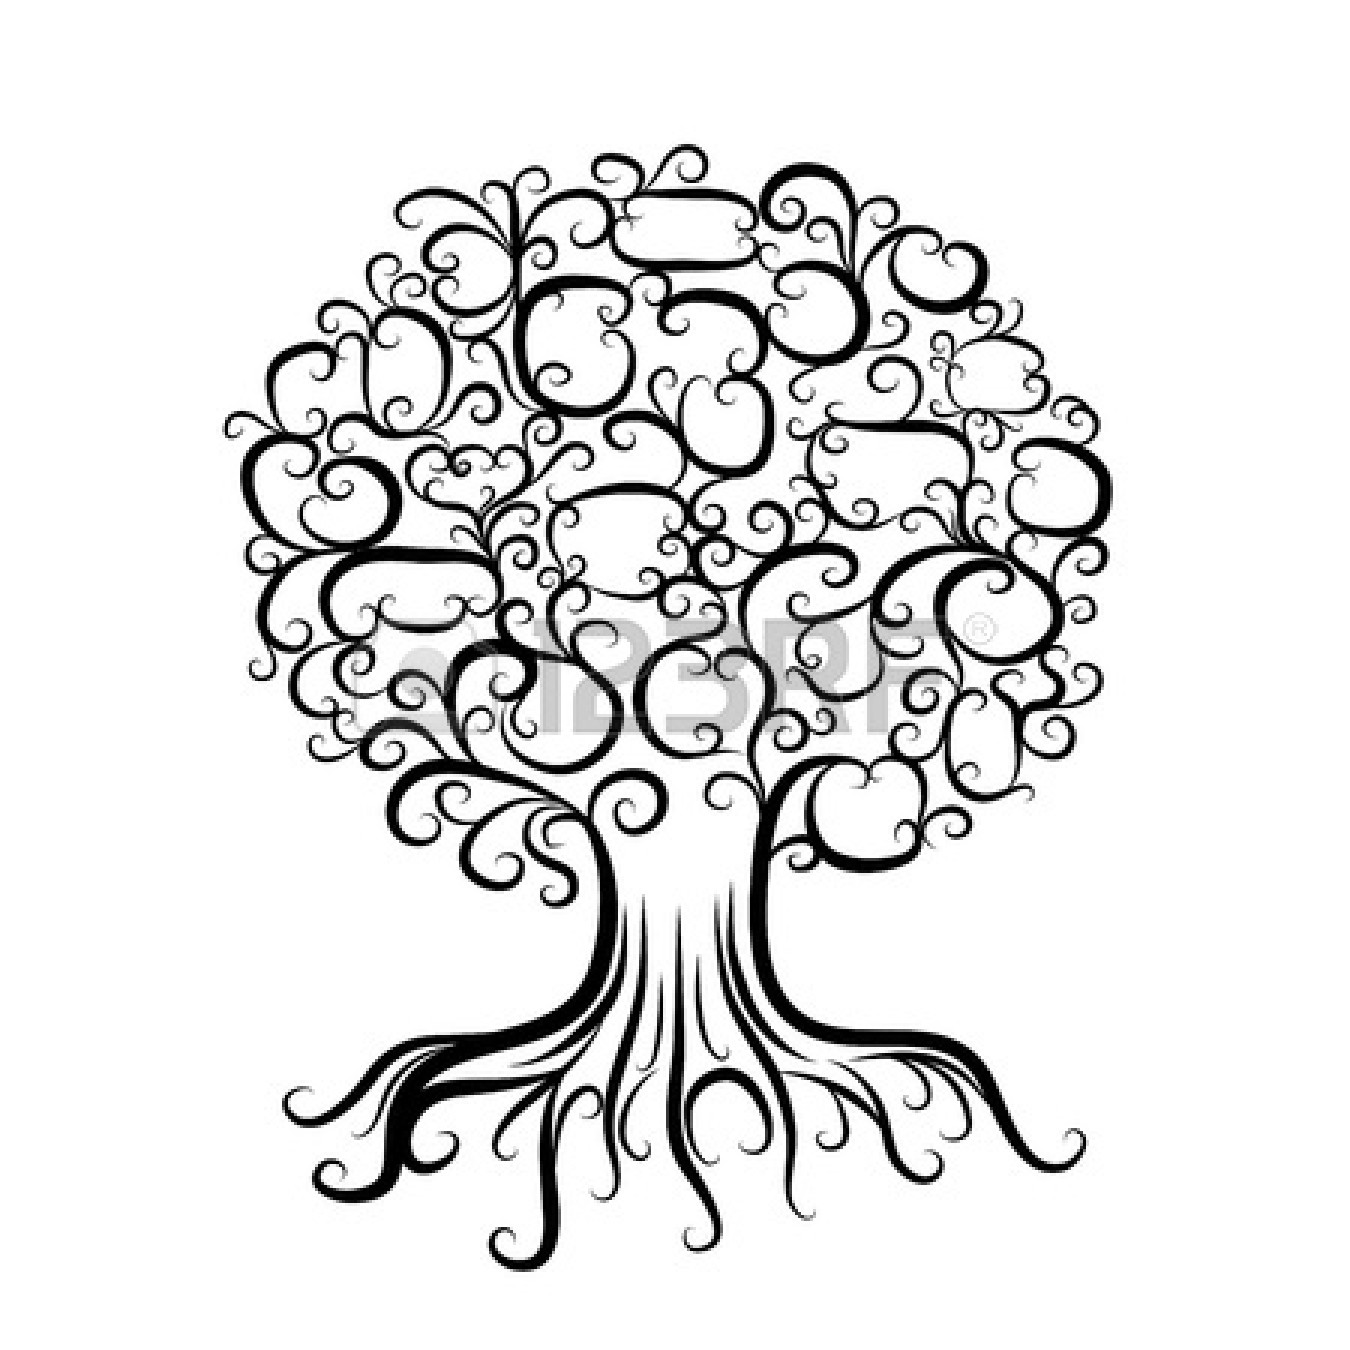 1350x1350 Ornamental Tree With Roots For Your Design Vector Art